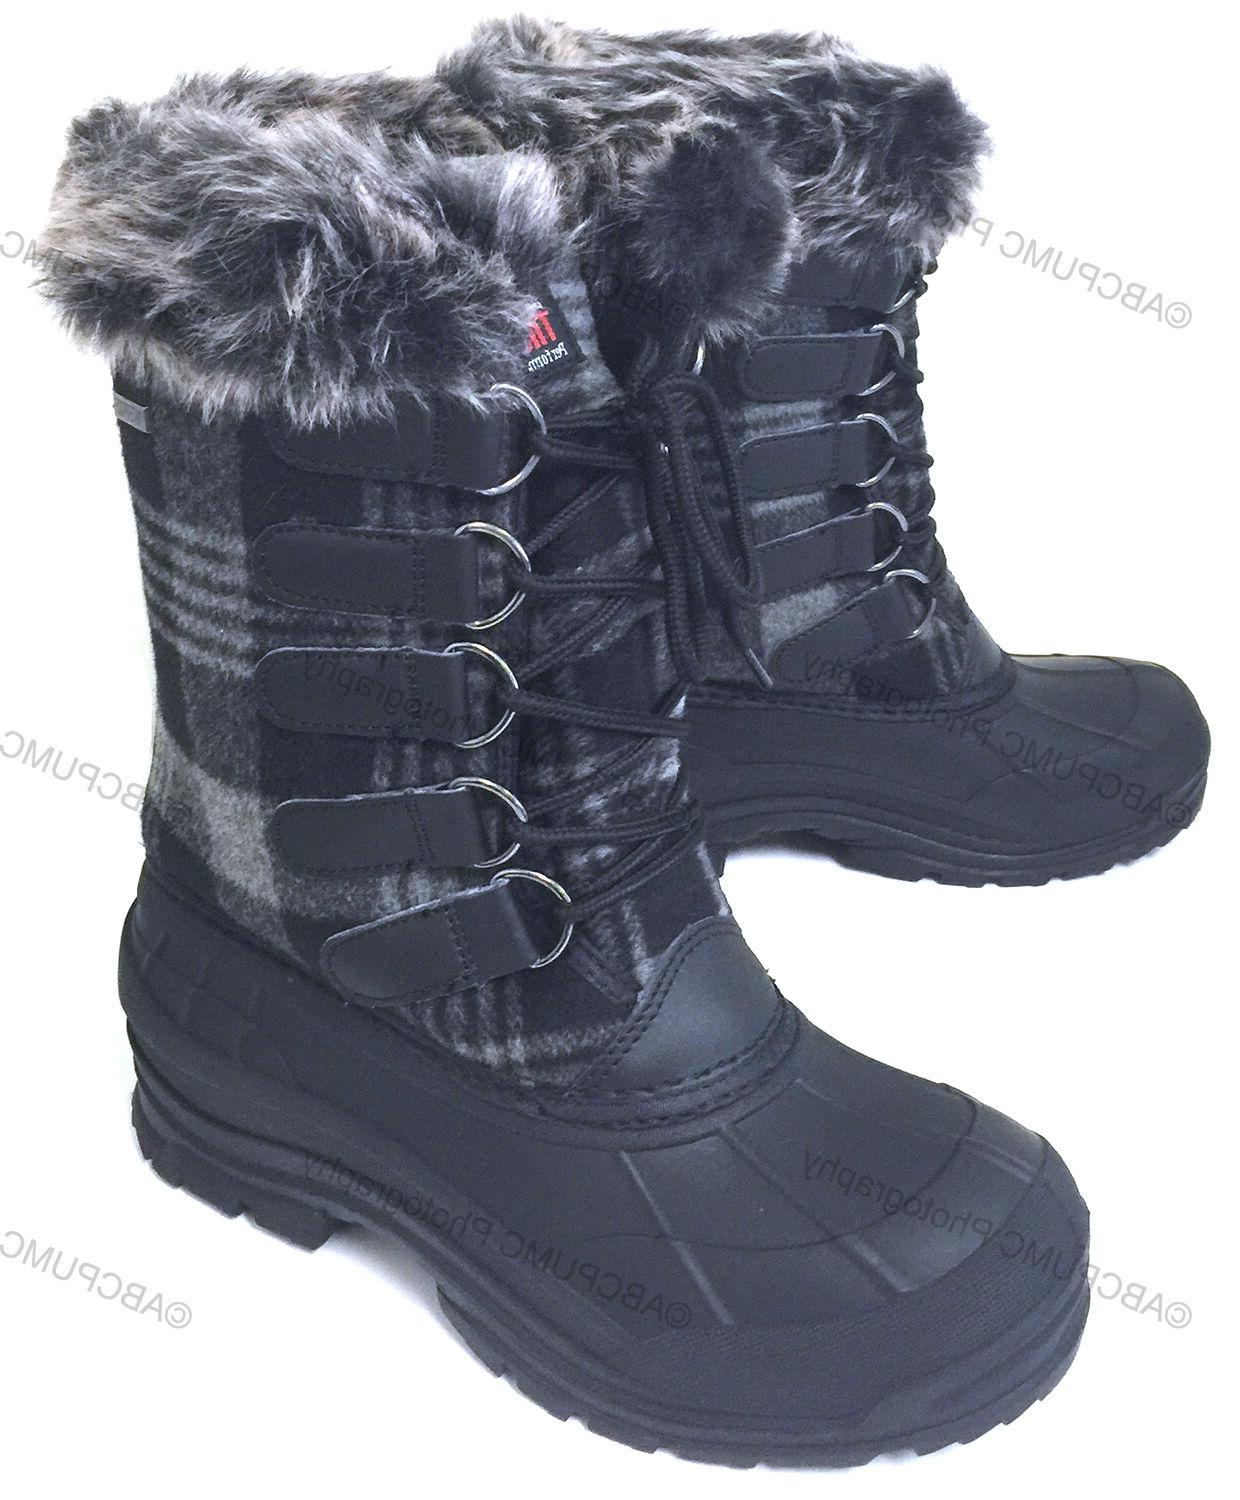 womens winter boots flannel plaid insulated fur